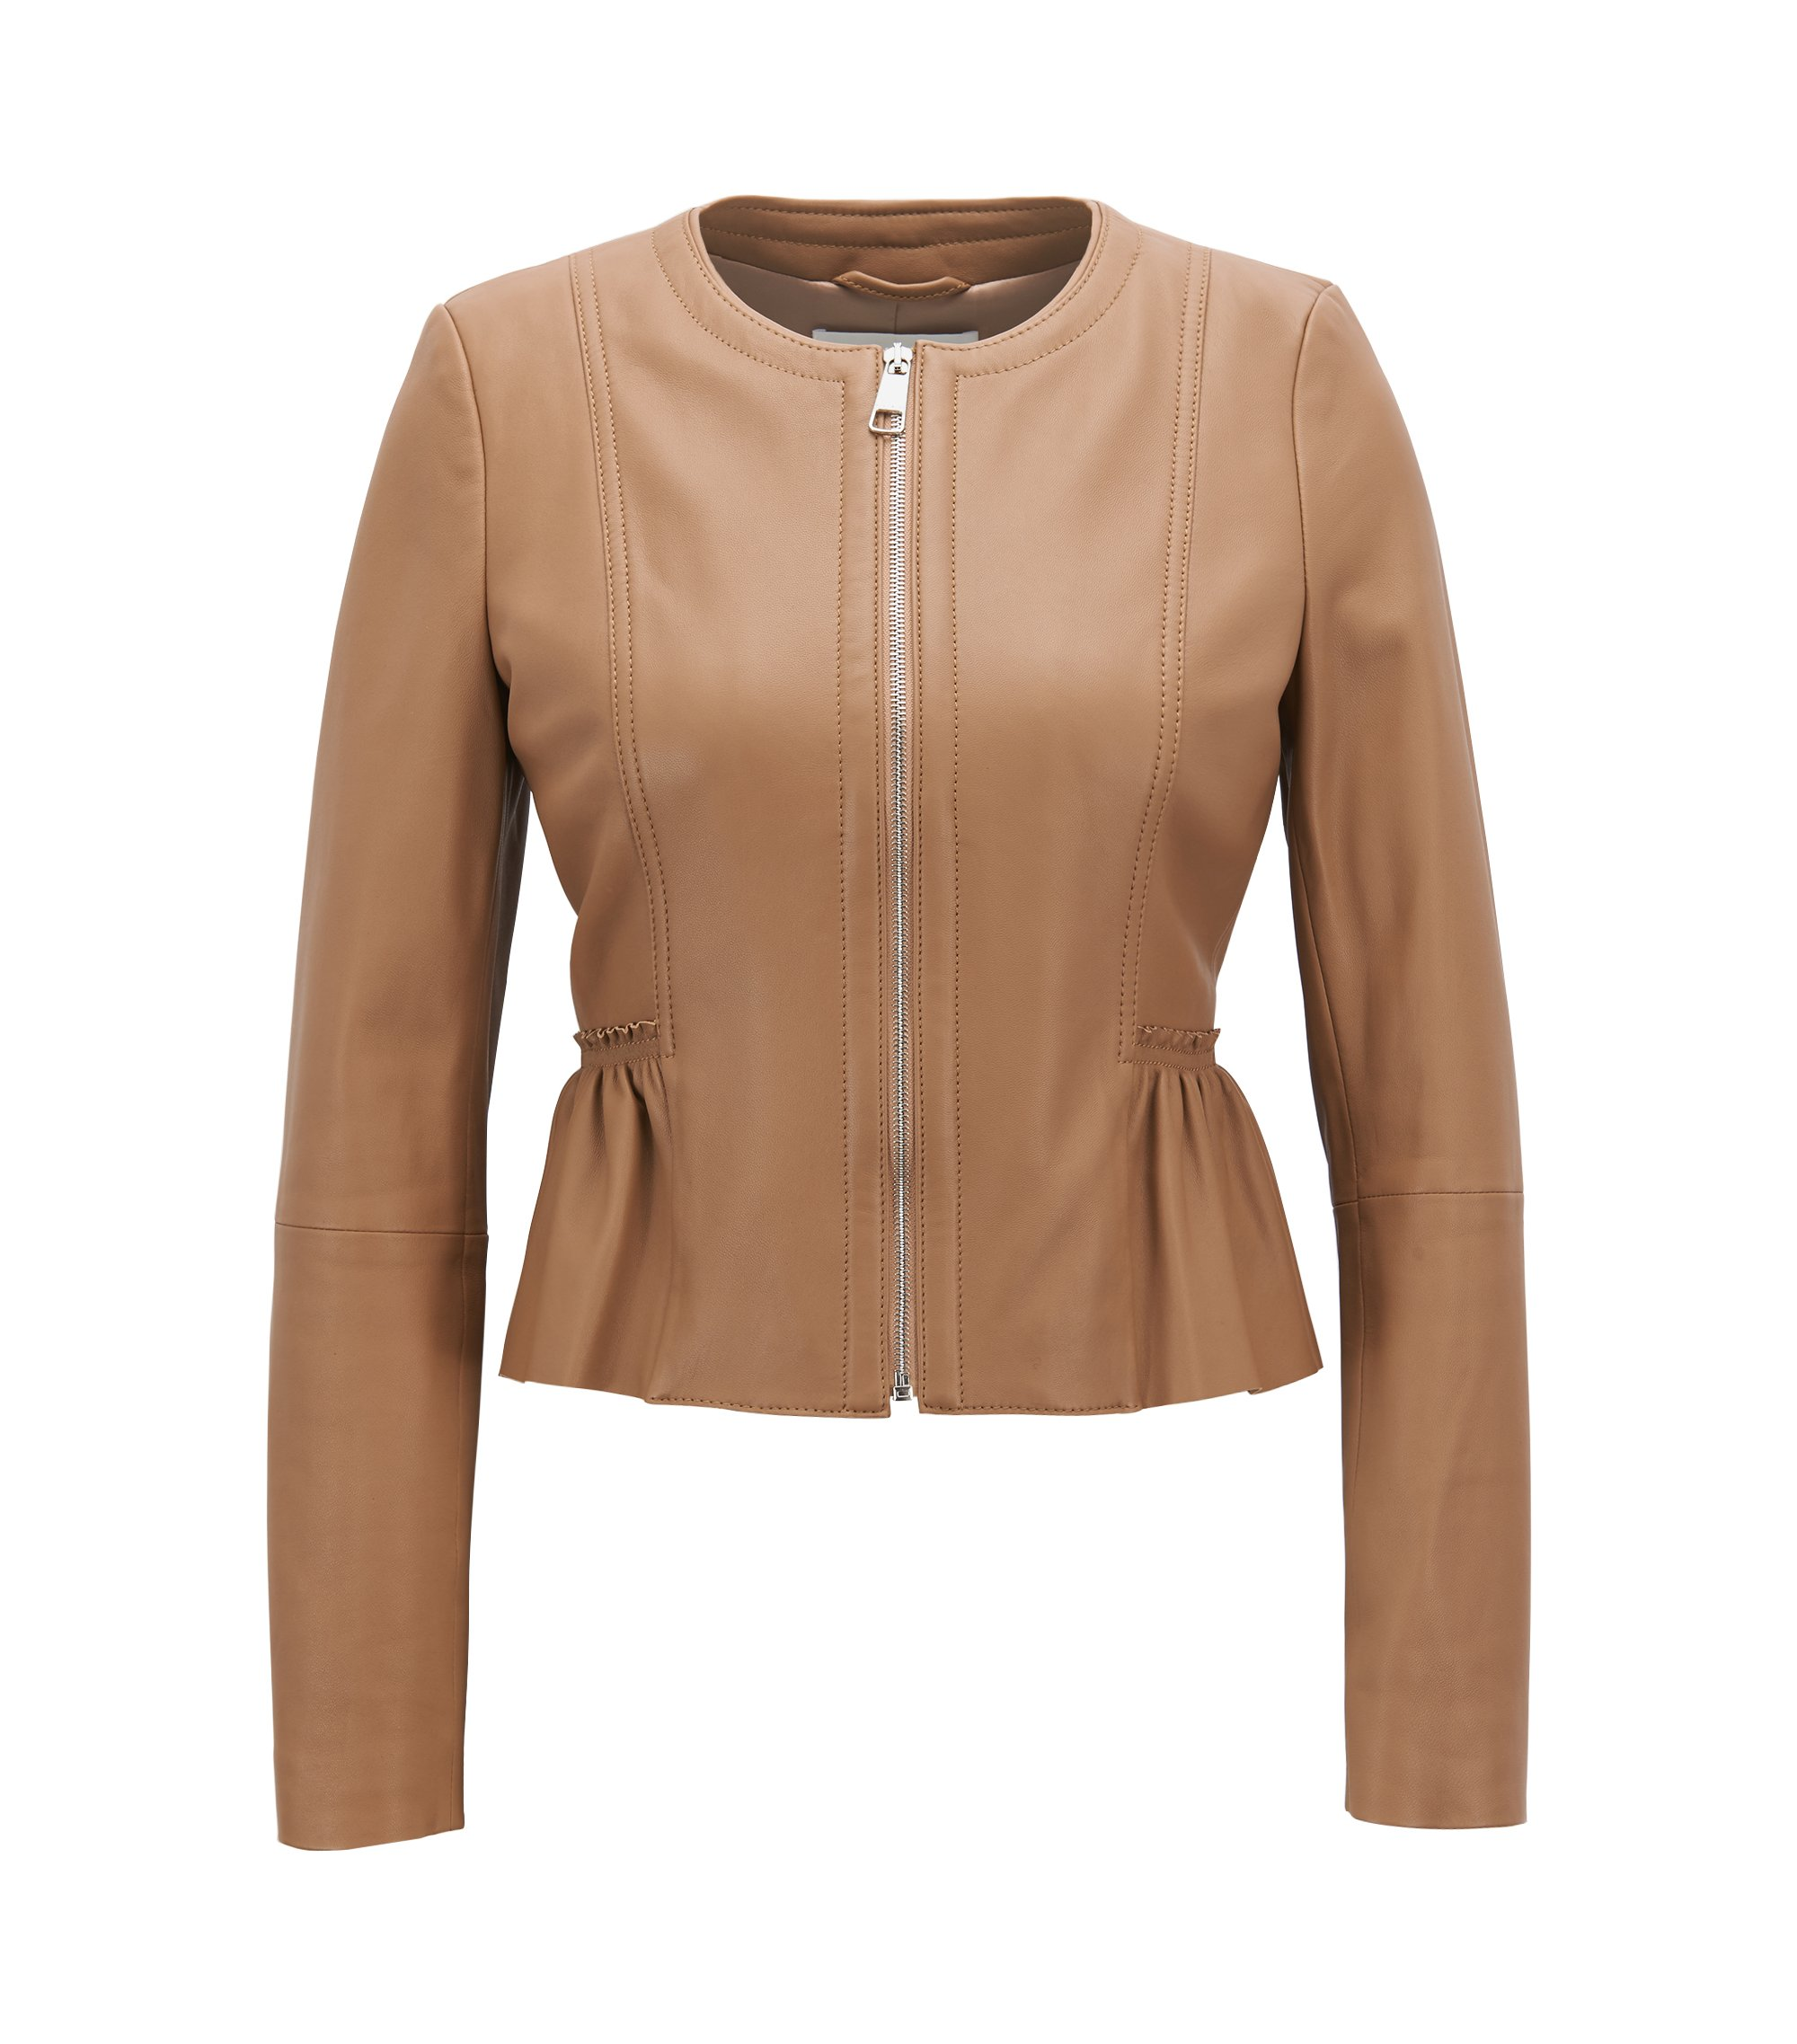 Peplum jacket in lambskin nappa leather, Beige